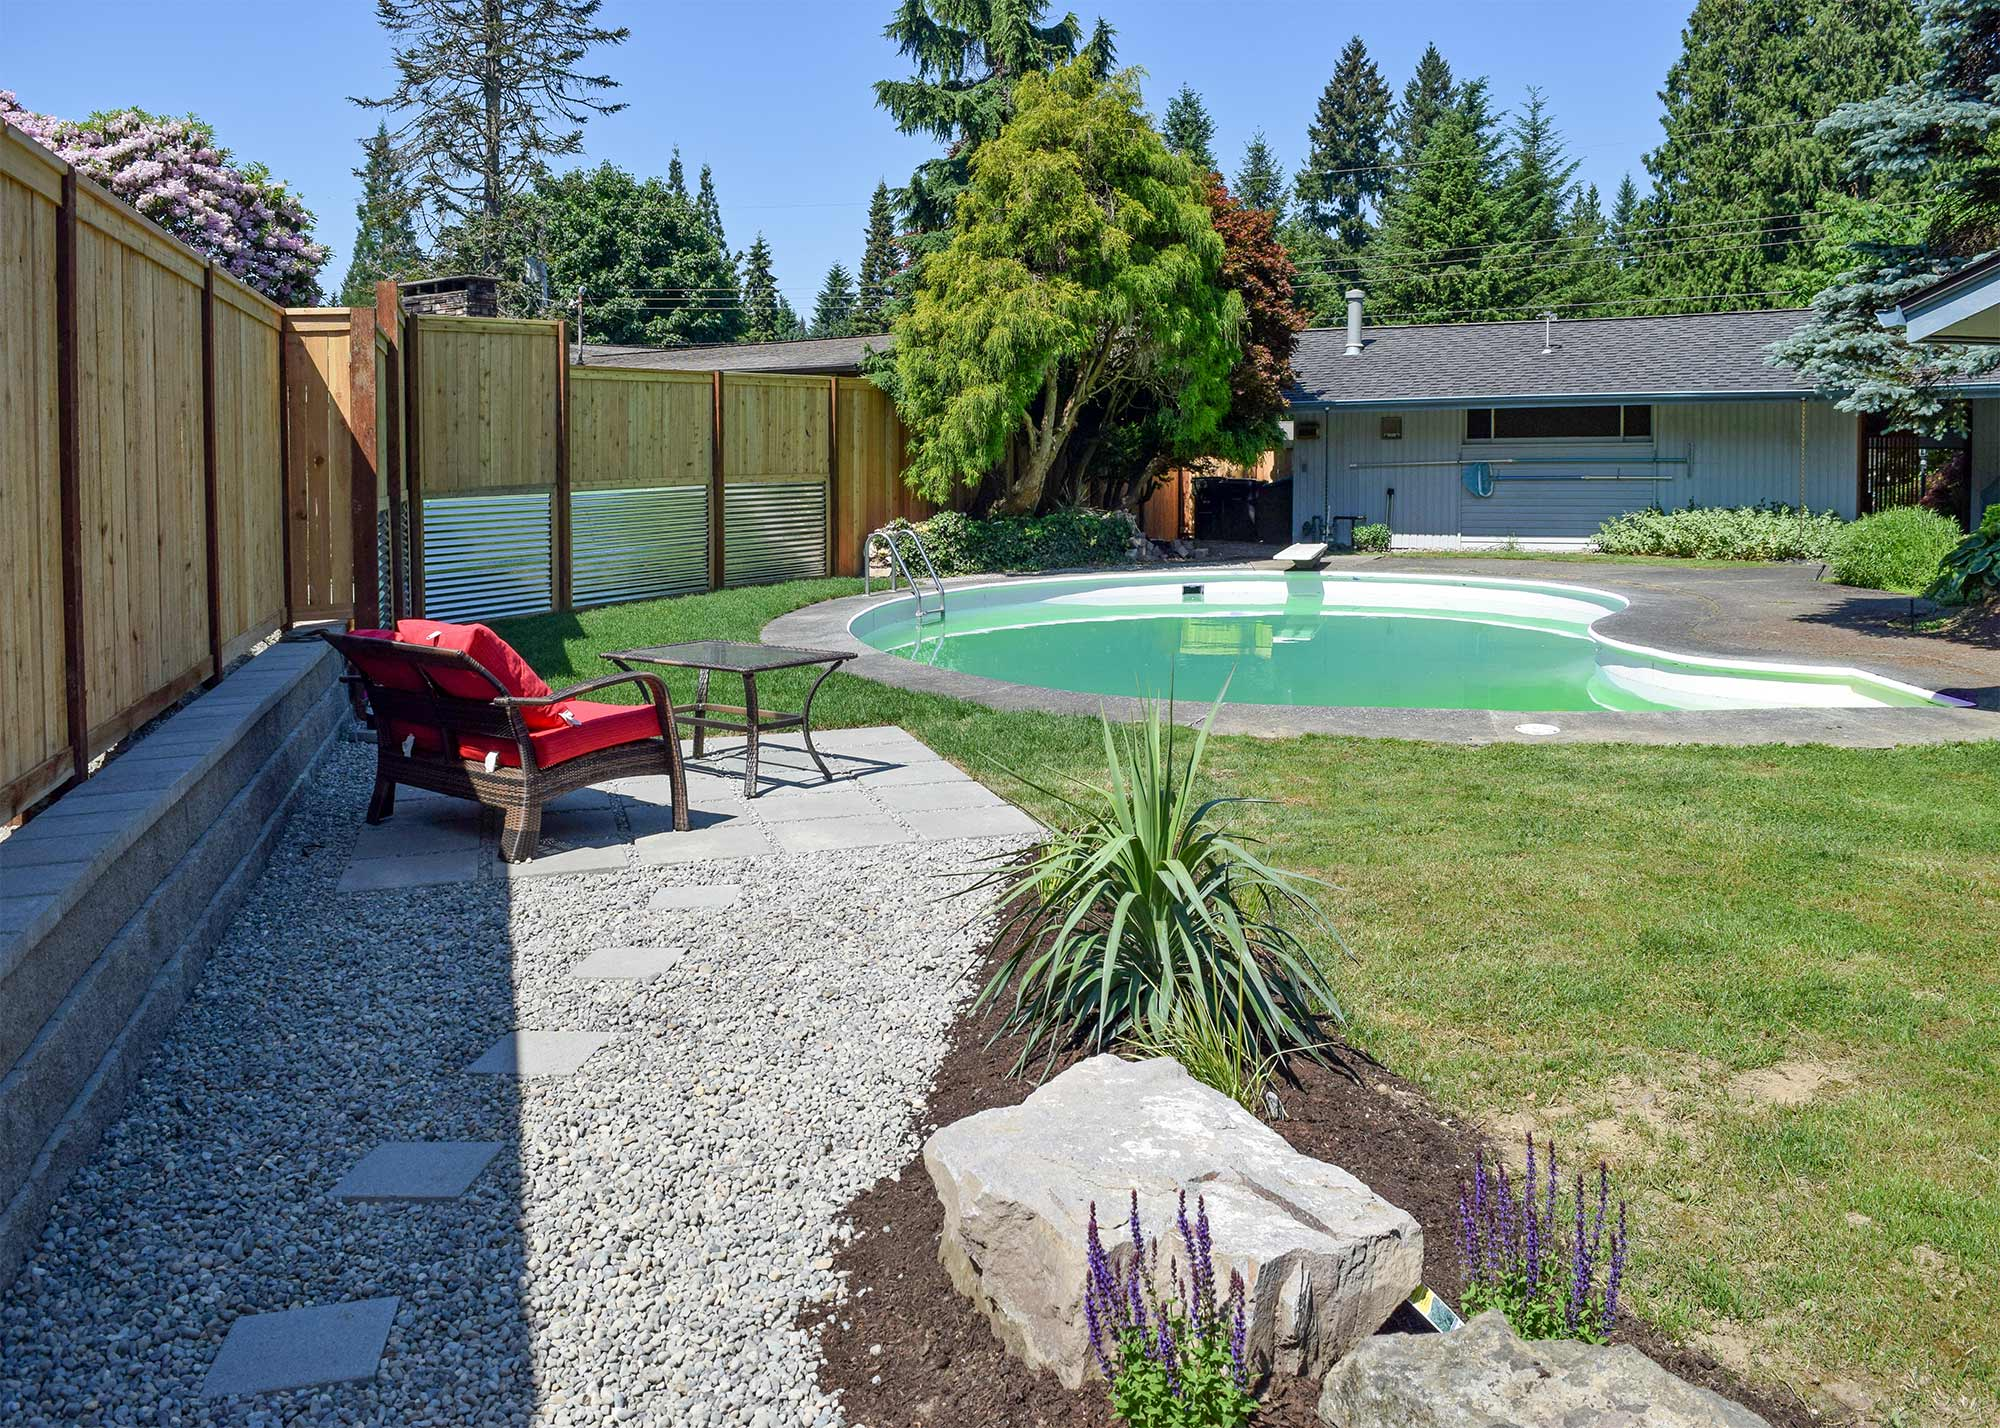 ... Click to enlarge image 05-poolside-after.jpg The new backyard The new backyard ... & South Olympia Poolside Transformation - AJB Landscaping \u0026 Fence